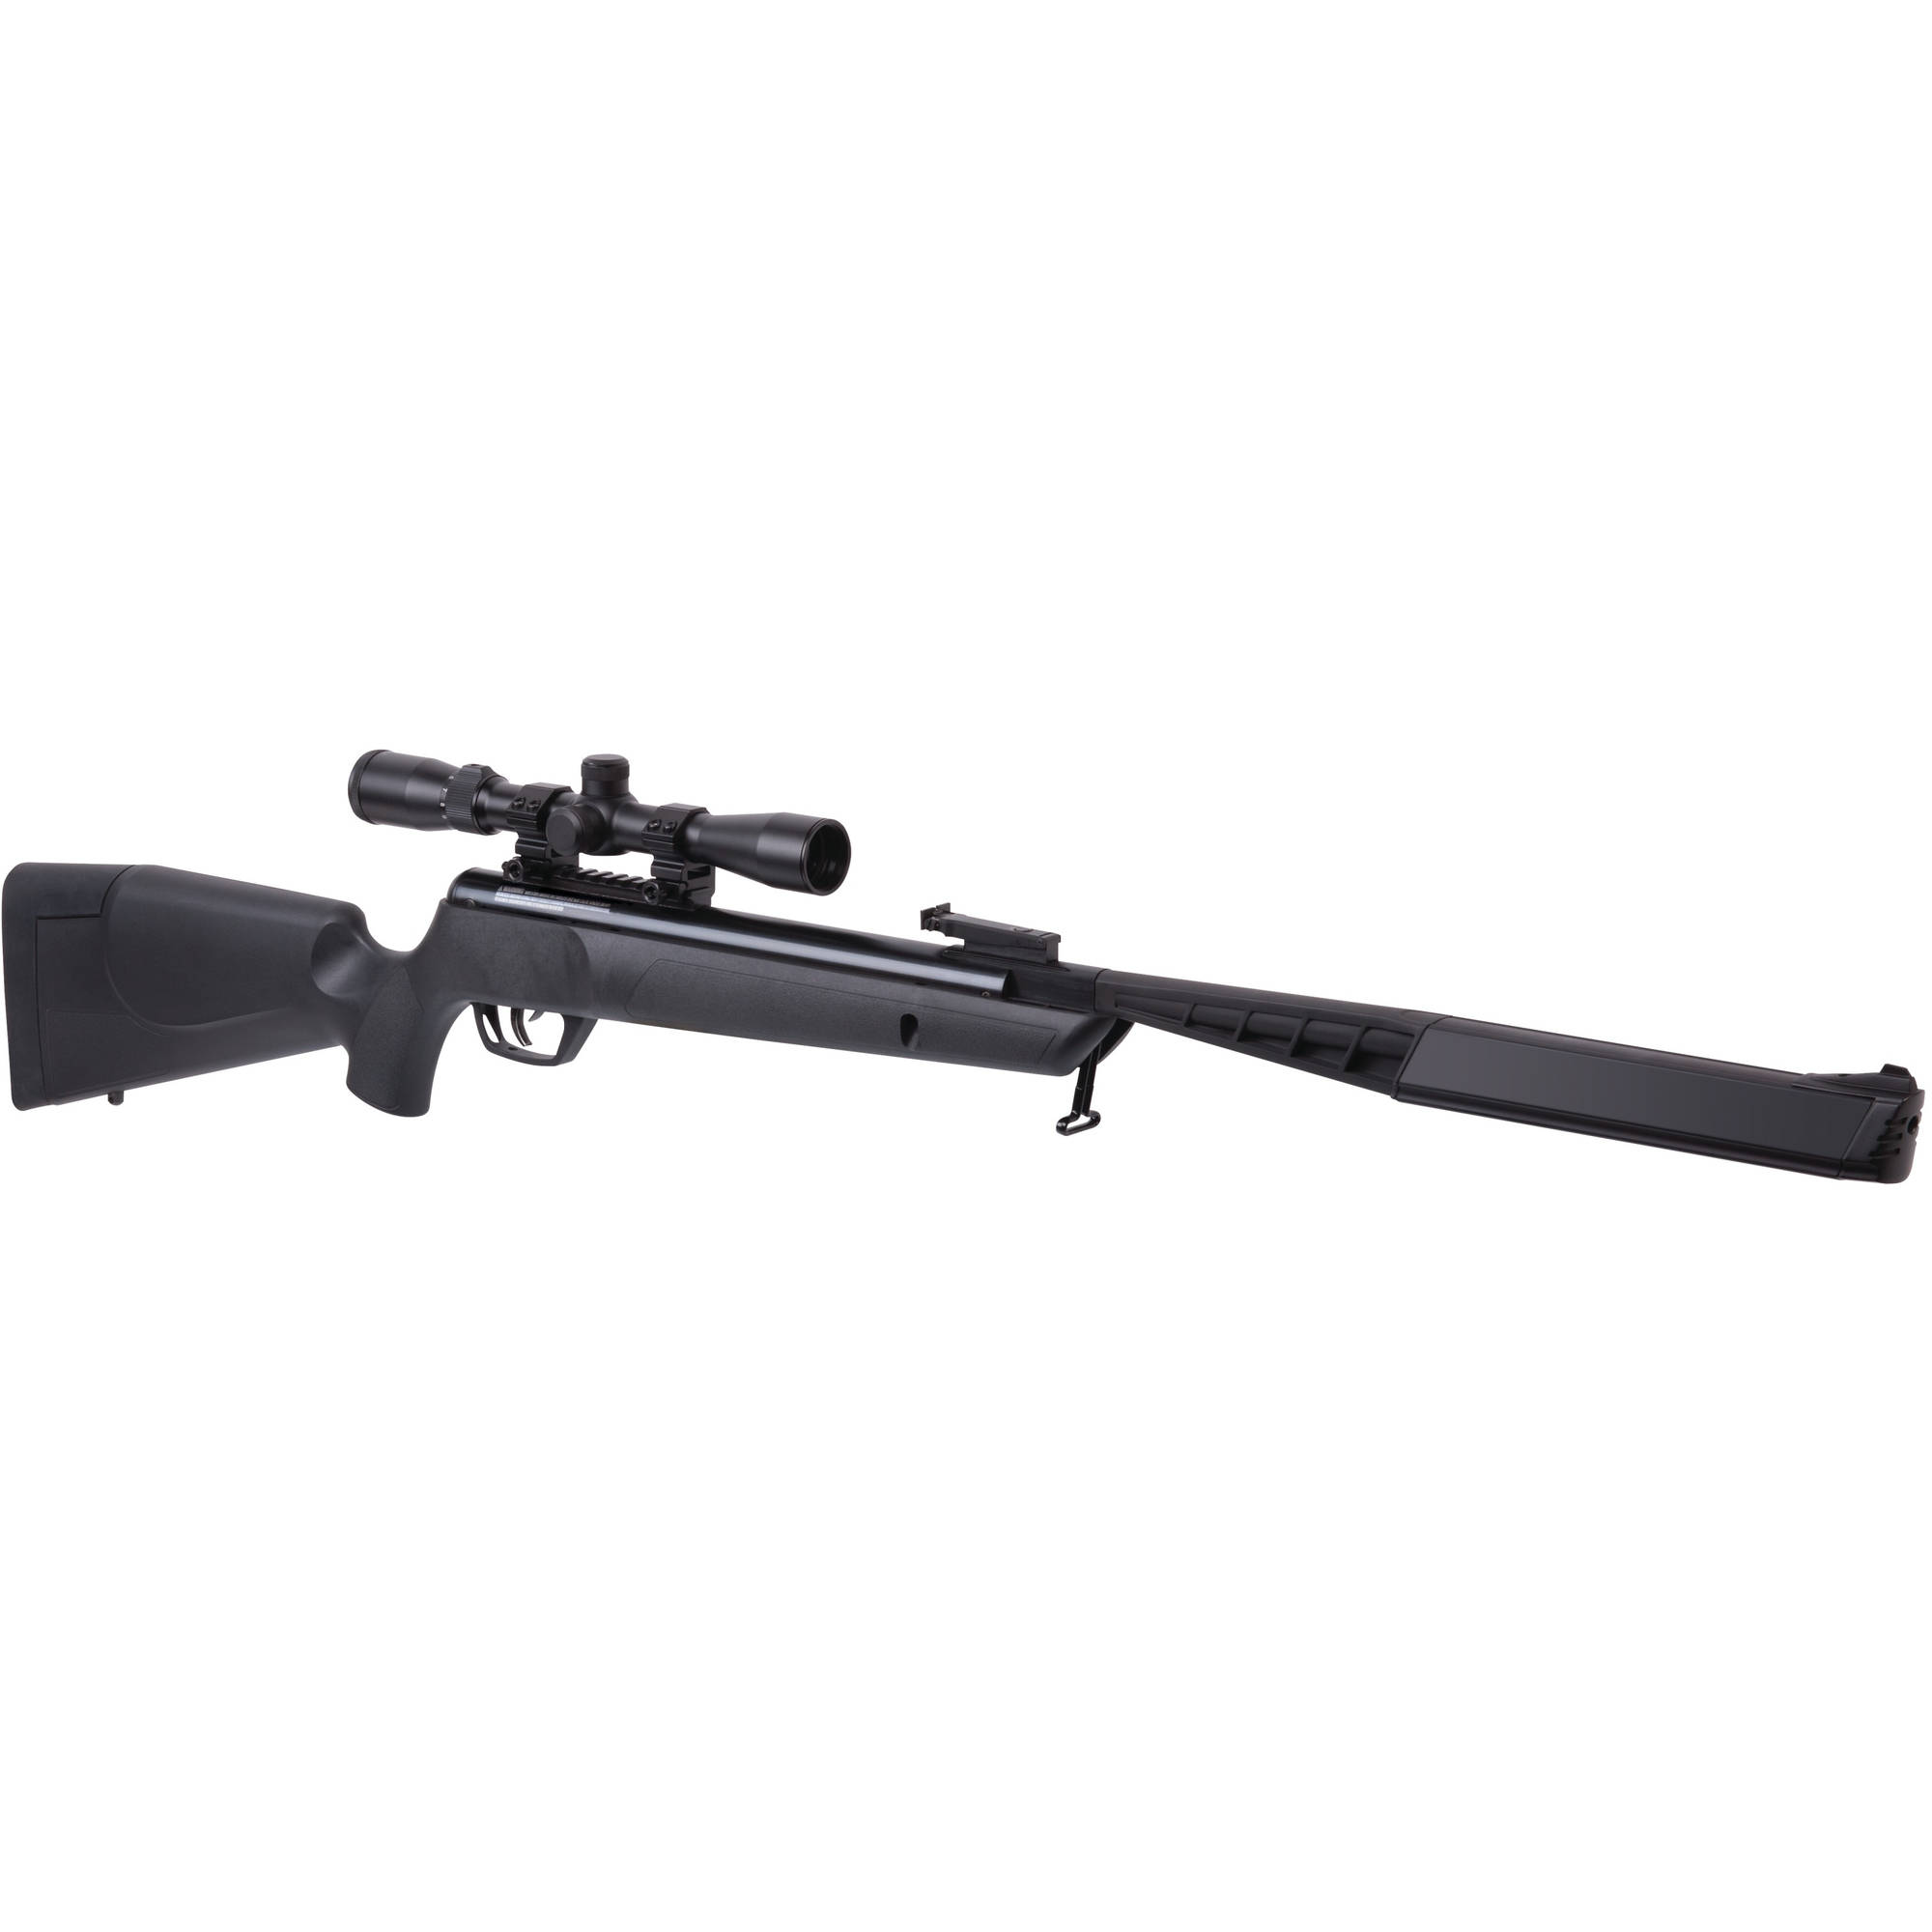 Benjamin Rouge SBD Stealth All-Weather .22 Caliber NP2 Break Barrel Air Rifle with Scope, 1100fps by Crosman Corporation